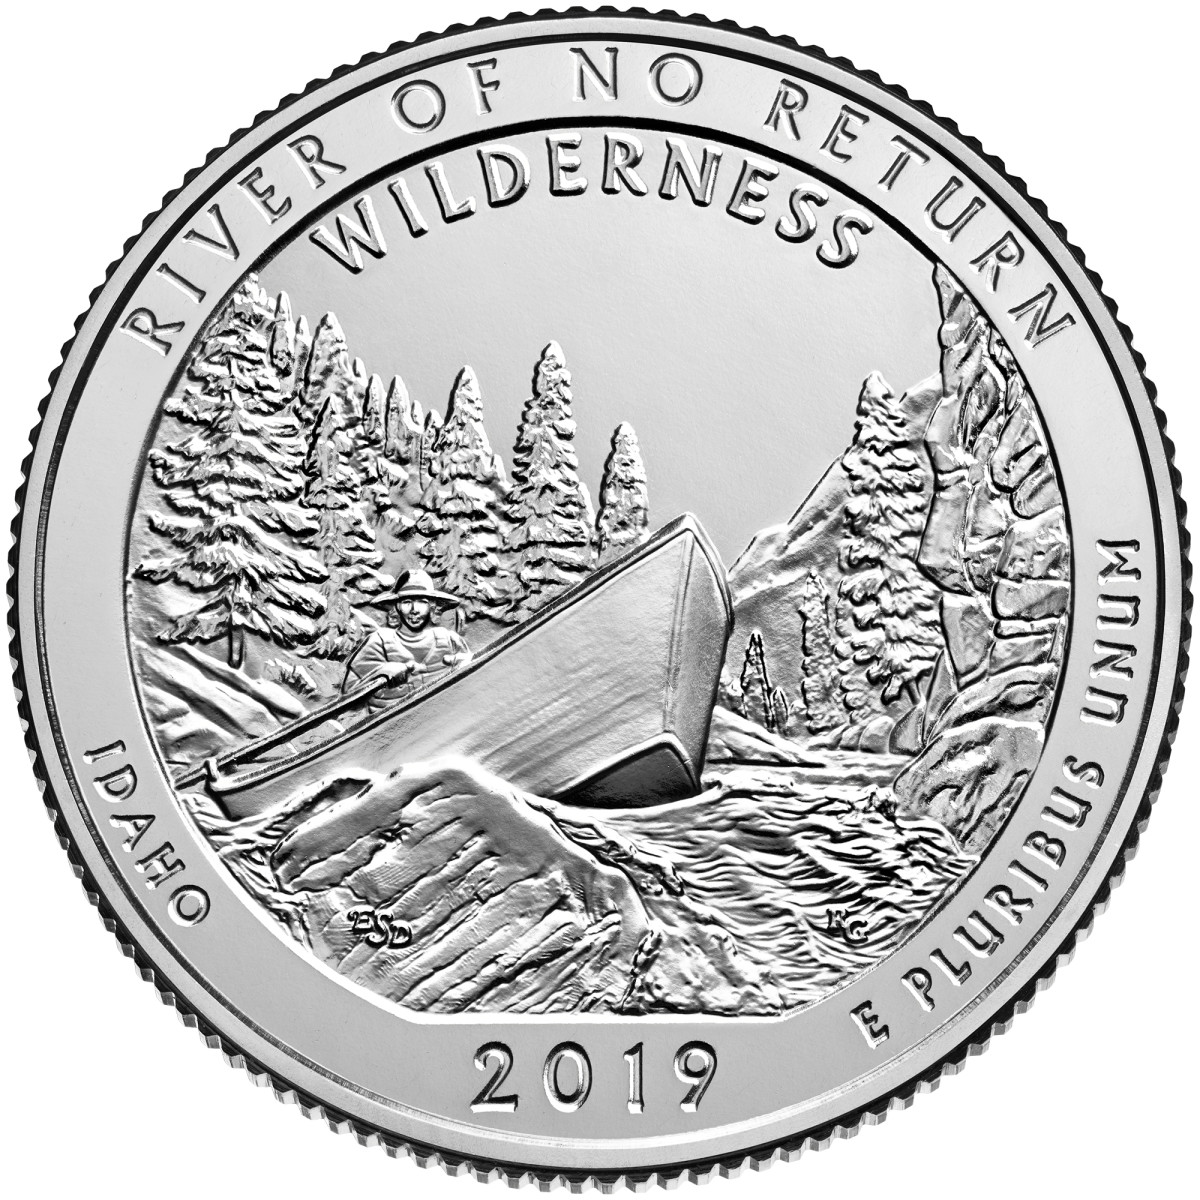 The America the Beautiful quarter honoring Frank Church River of No Return Wilderness in Idaho is the final ATB to launch in 2019 as well as the 50th coin issued in the program. (Image courtesy U.S. Mint.)